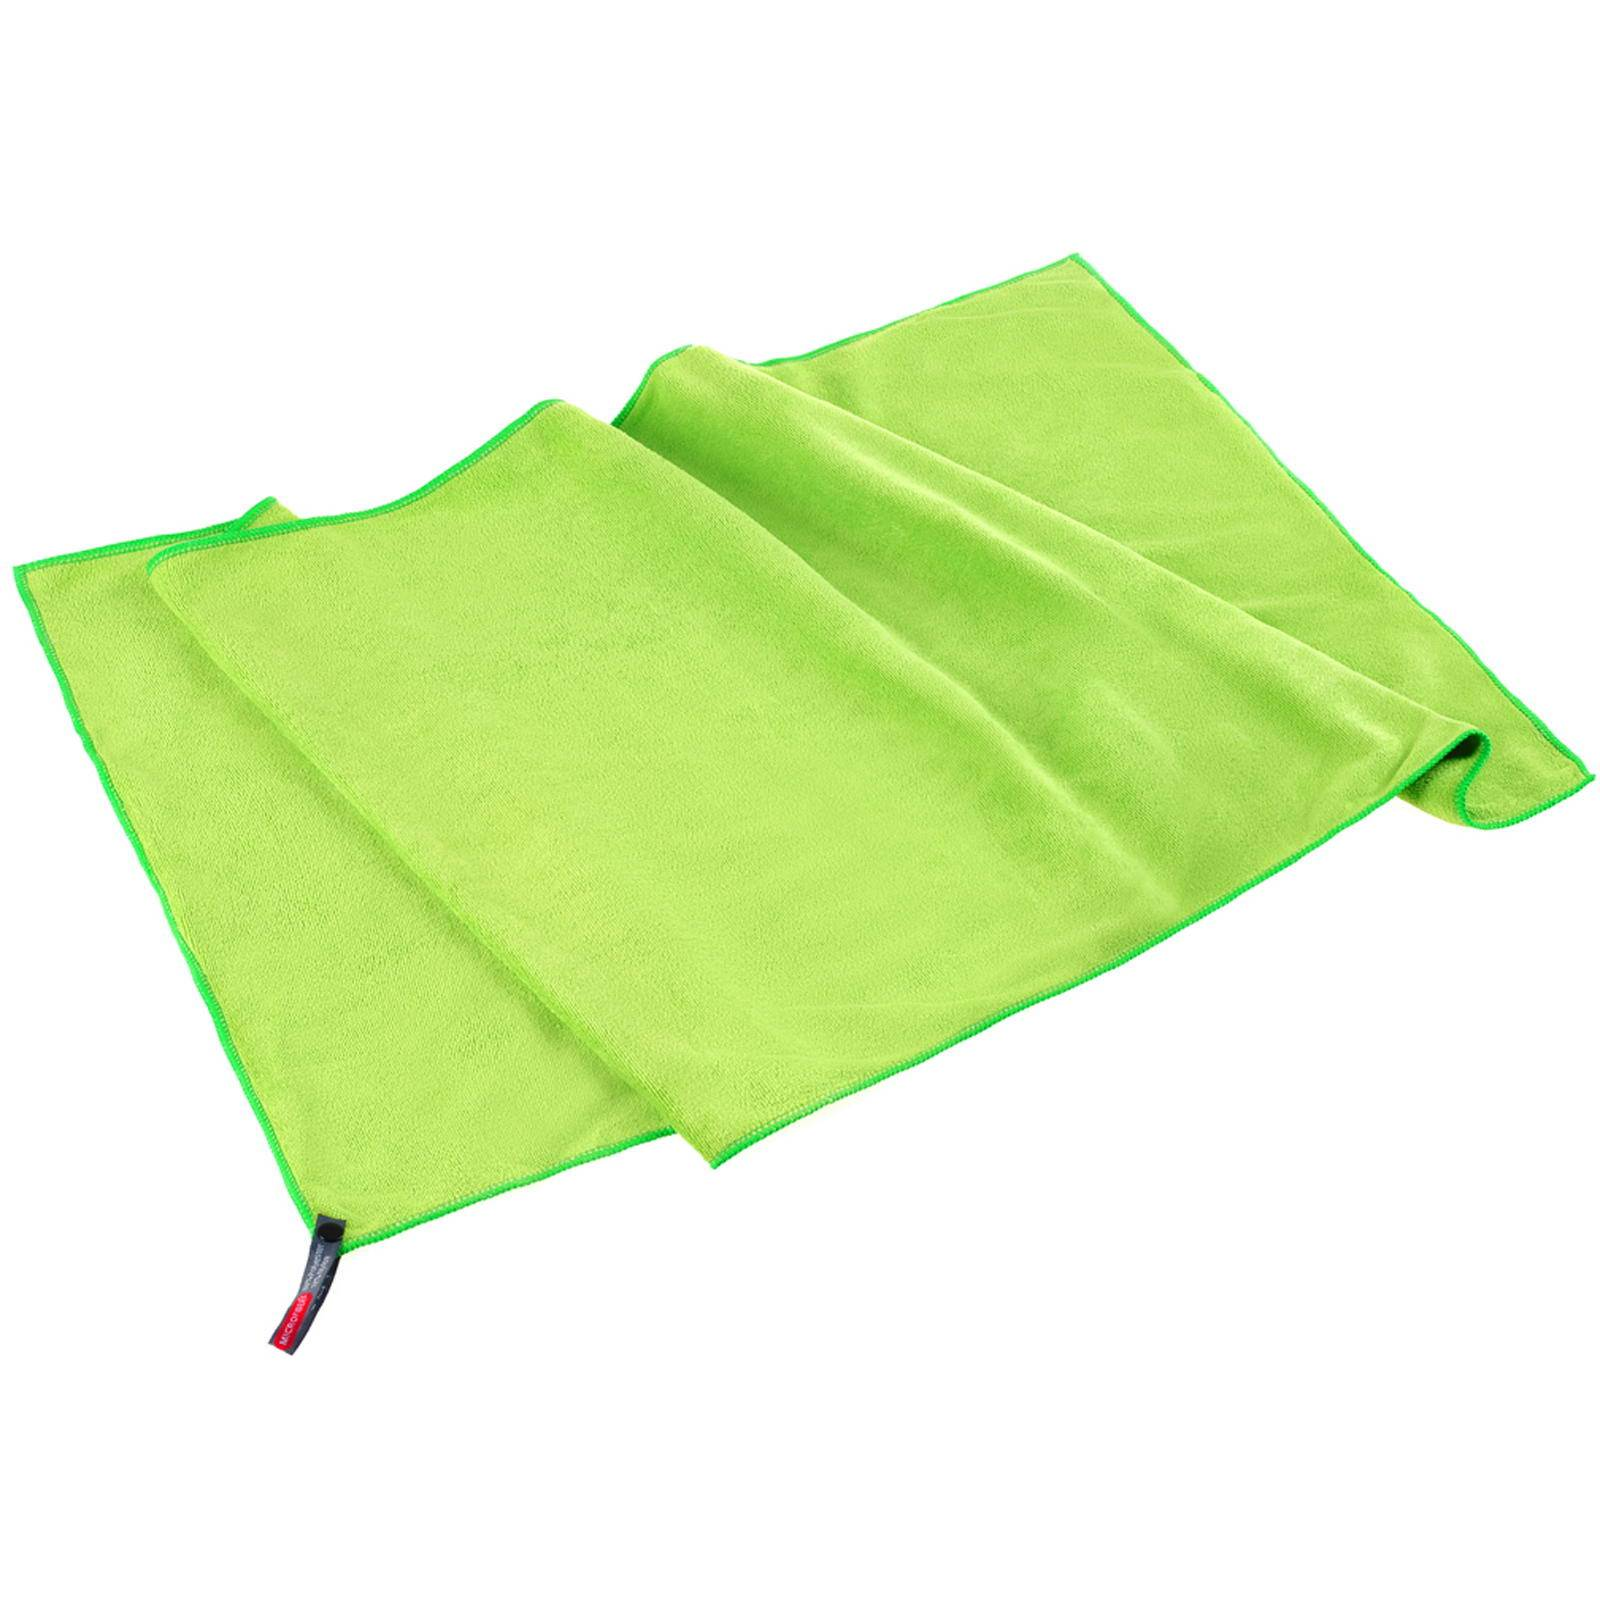 LACD Soft Towel S - Outdoorhandtuch lime - Bild 3